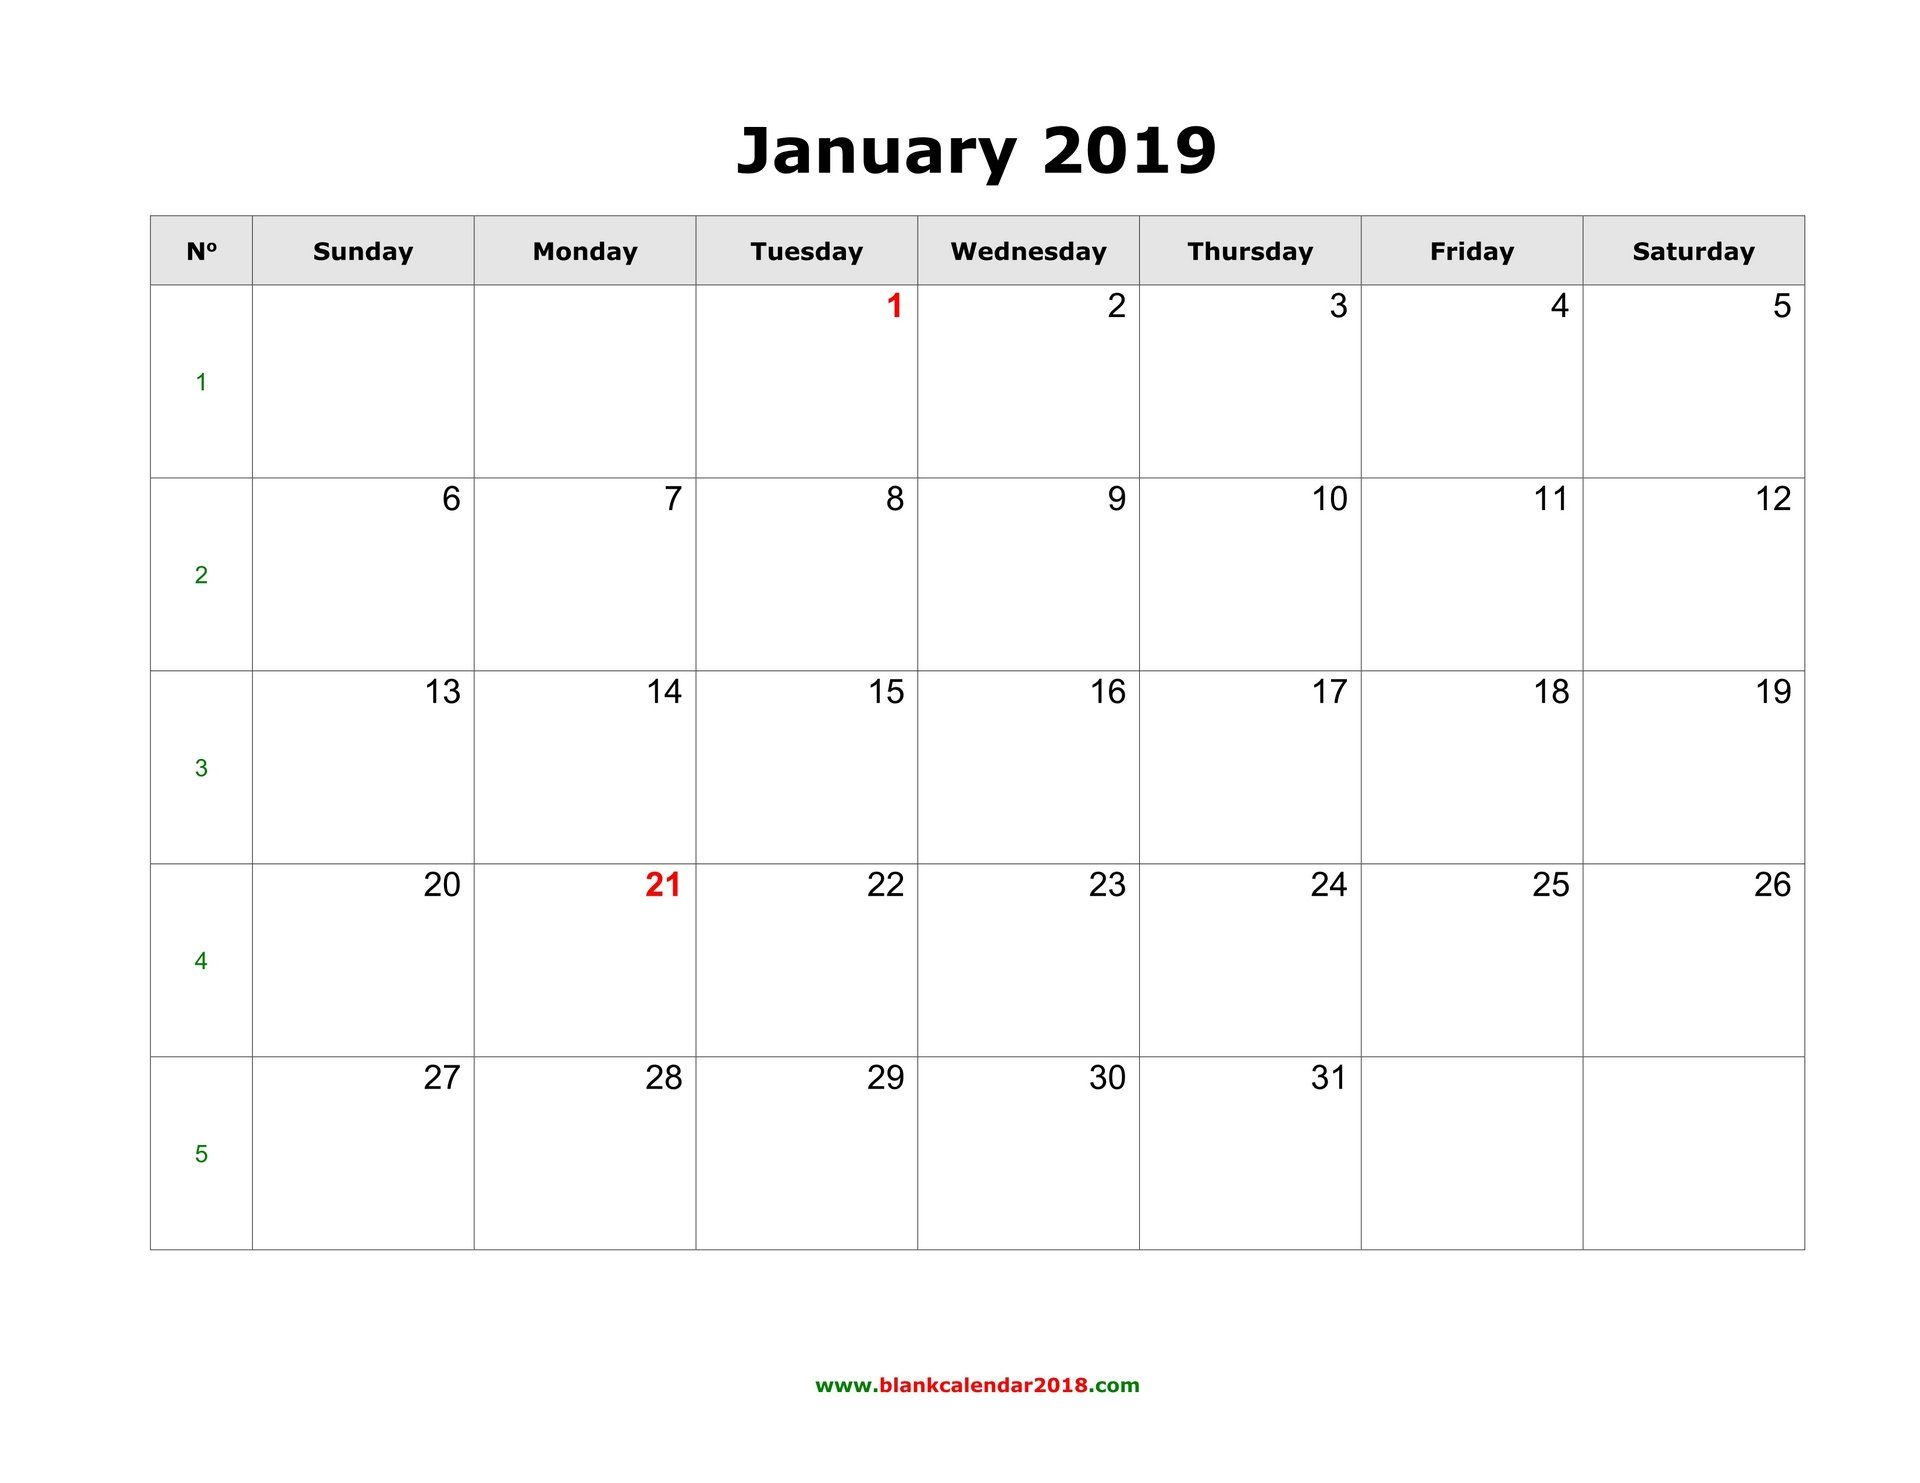 Blank Calendar For January 2019 Calendar 2019 January Printable